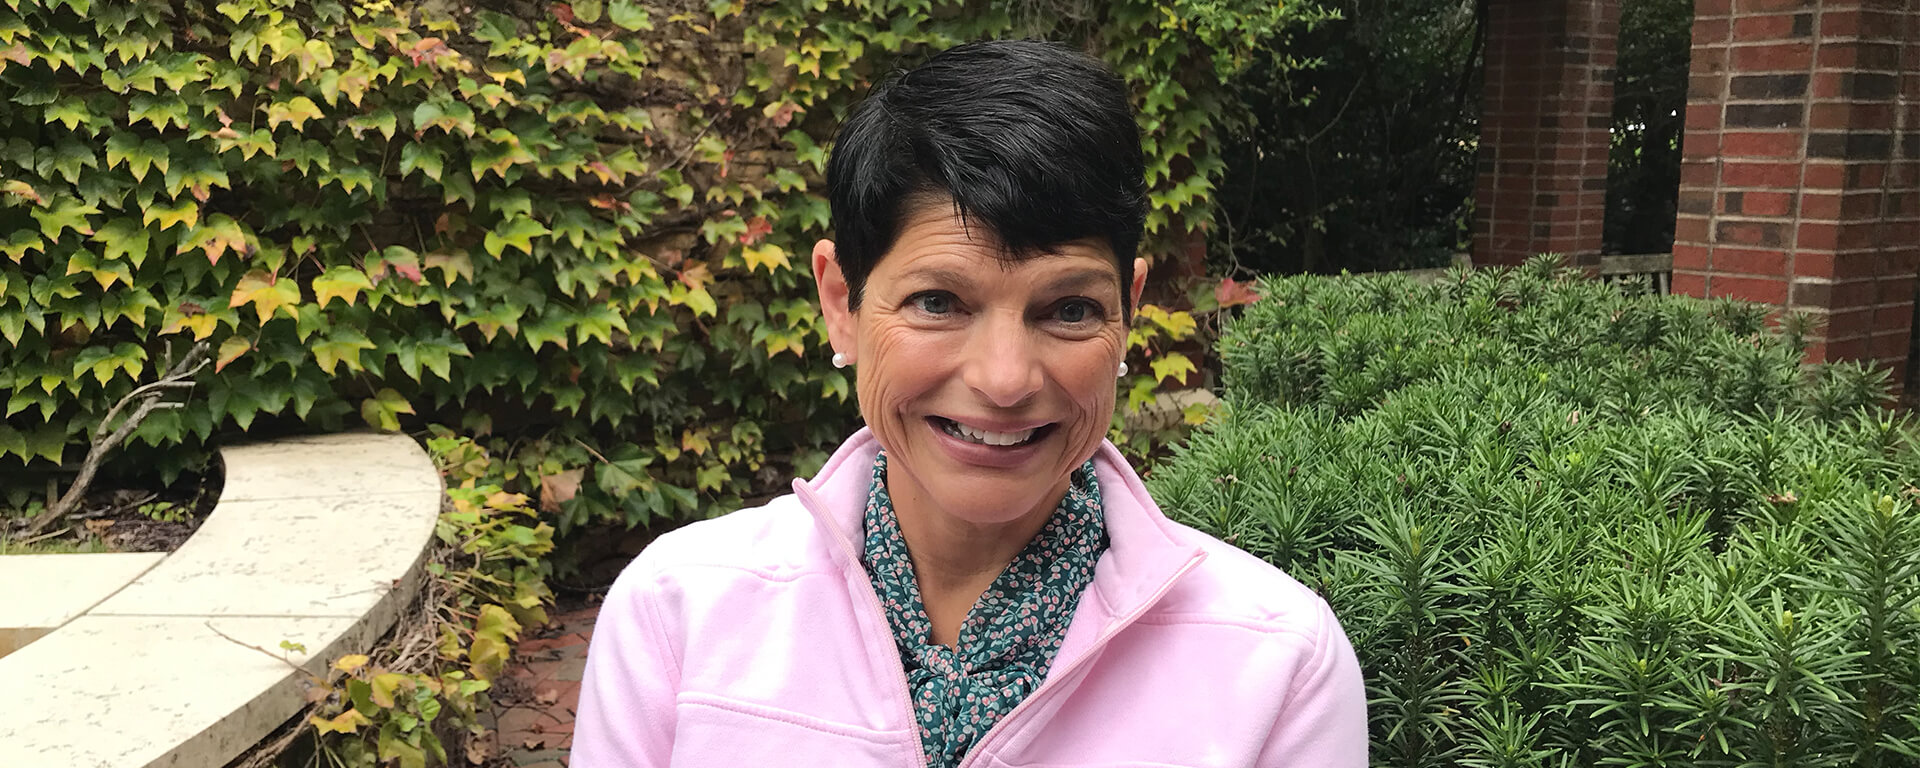 Capital One Chief of Staff Allie talks about positivity while battling breast cancer